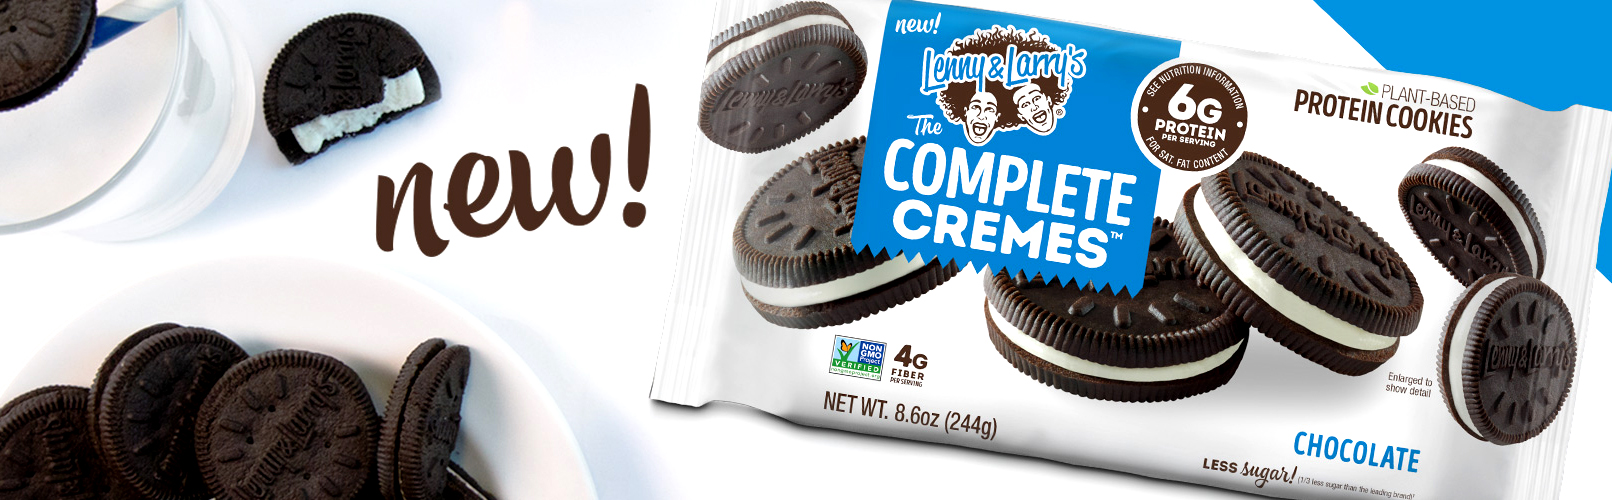 Lenny Lary Complete Oreo Cremes